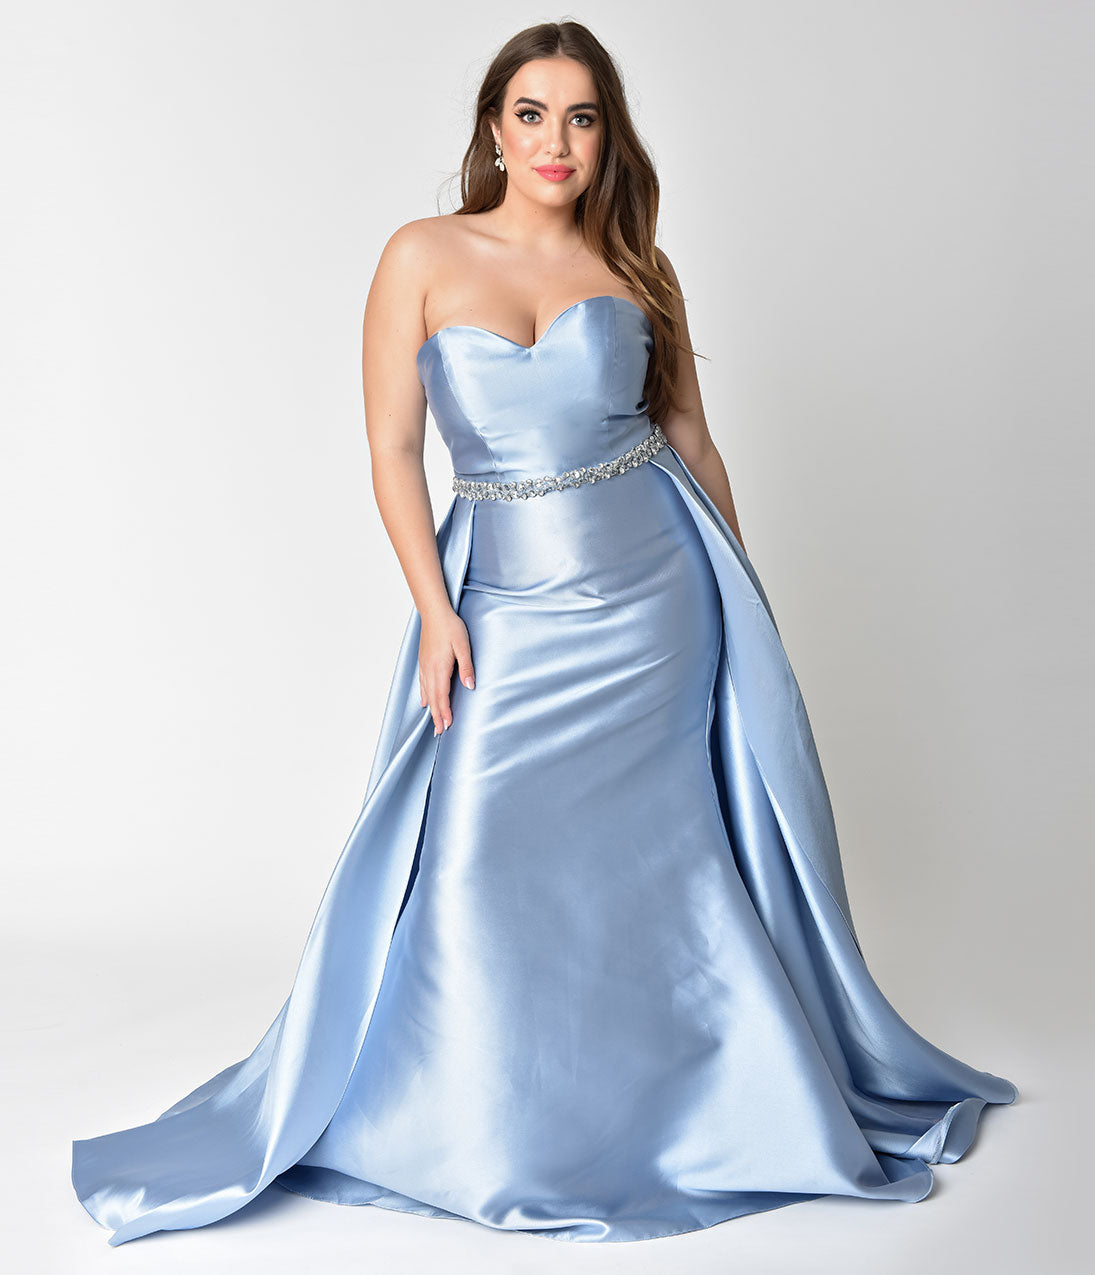 Vintage Inspired Plus Size Dresses